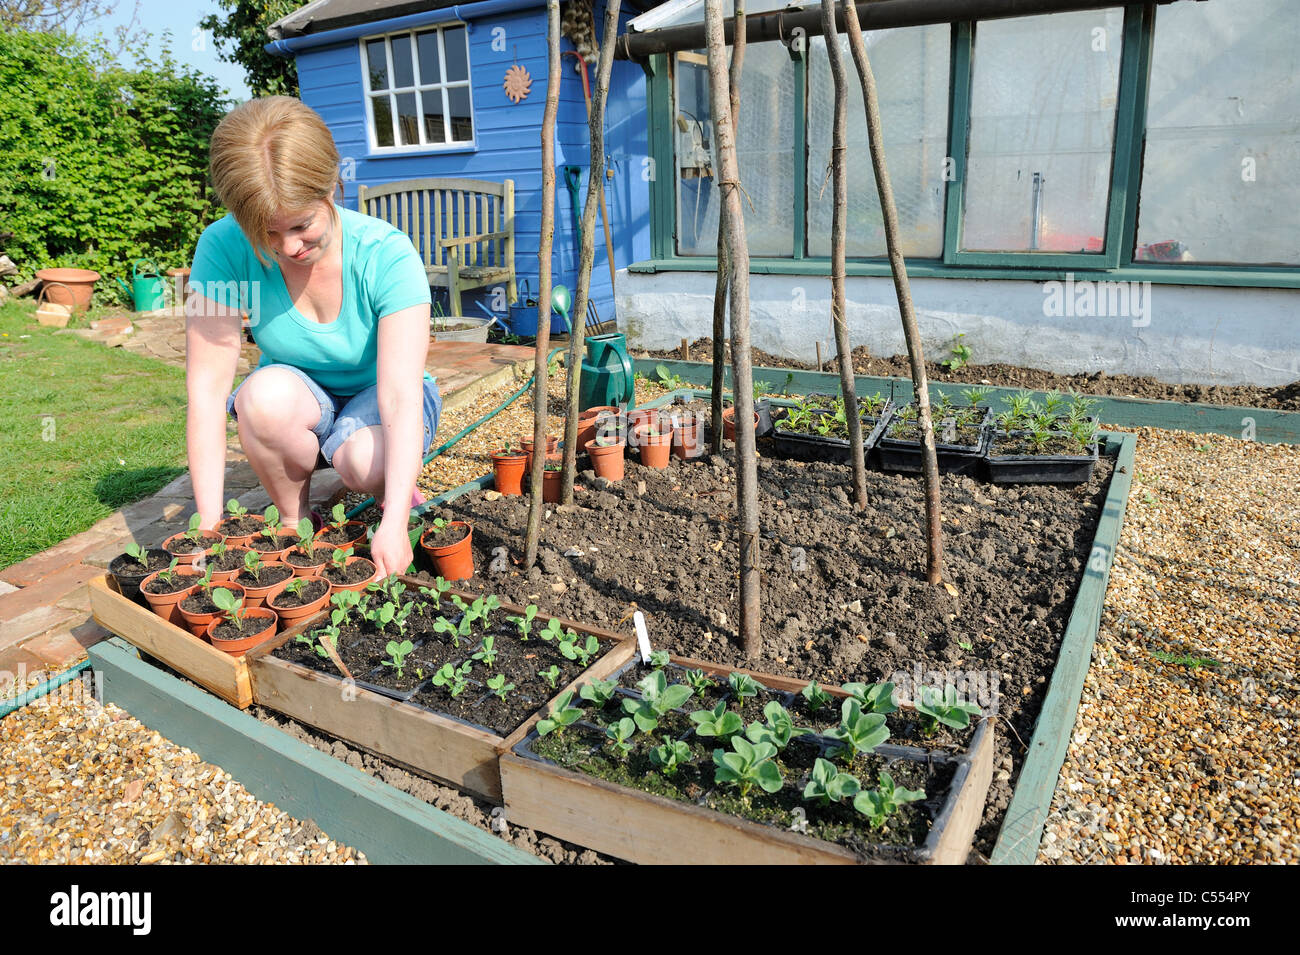 hardening off plants, woman gardener placing trays of plants outside to harden off prior to planting, Norfolk, England, - Stock Image